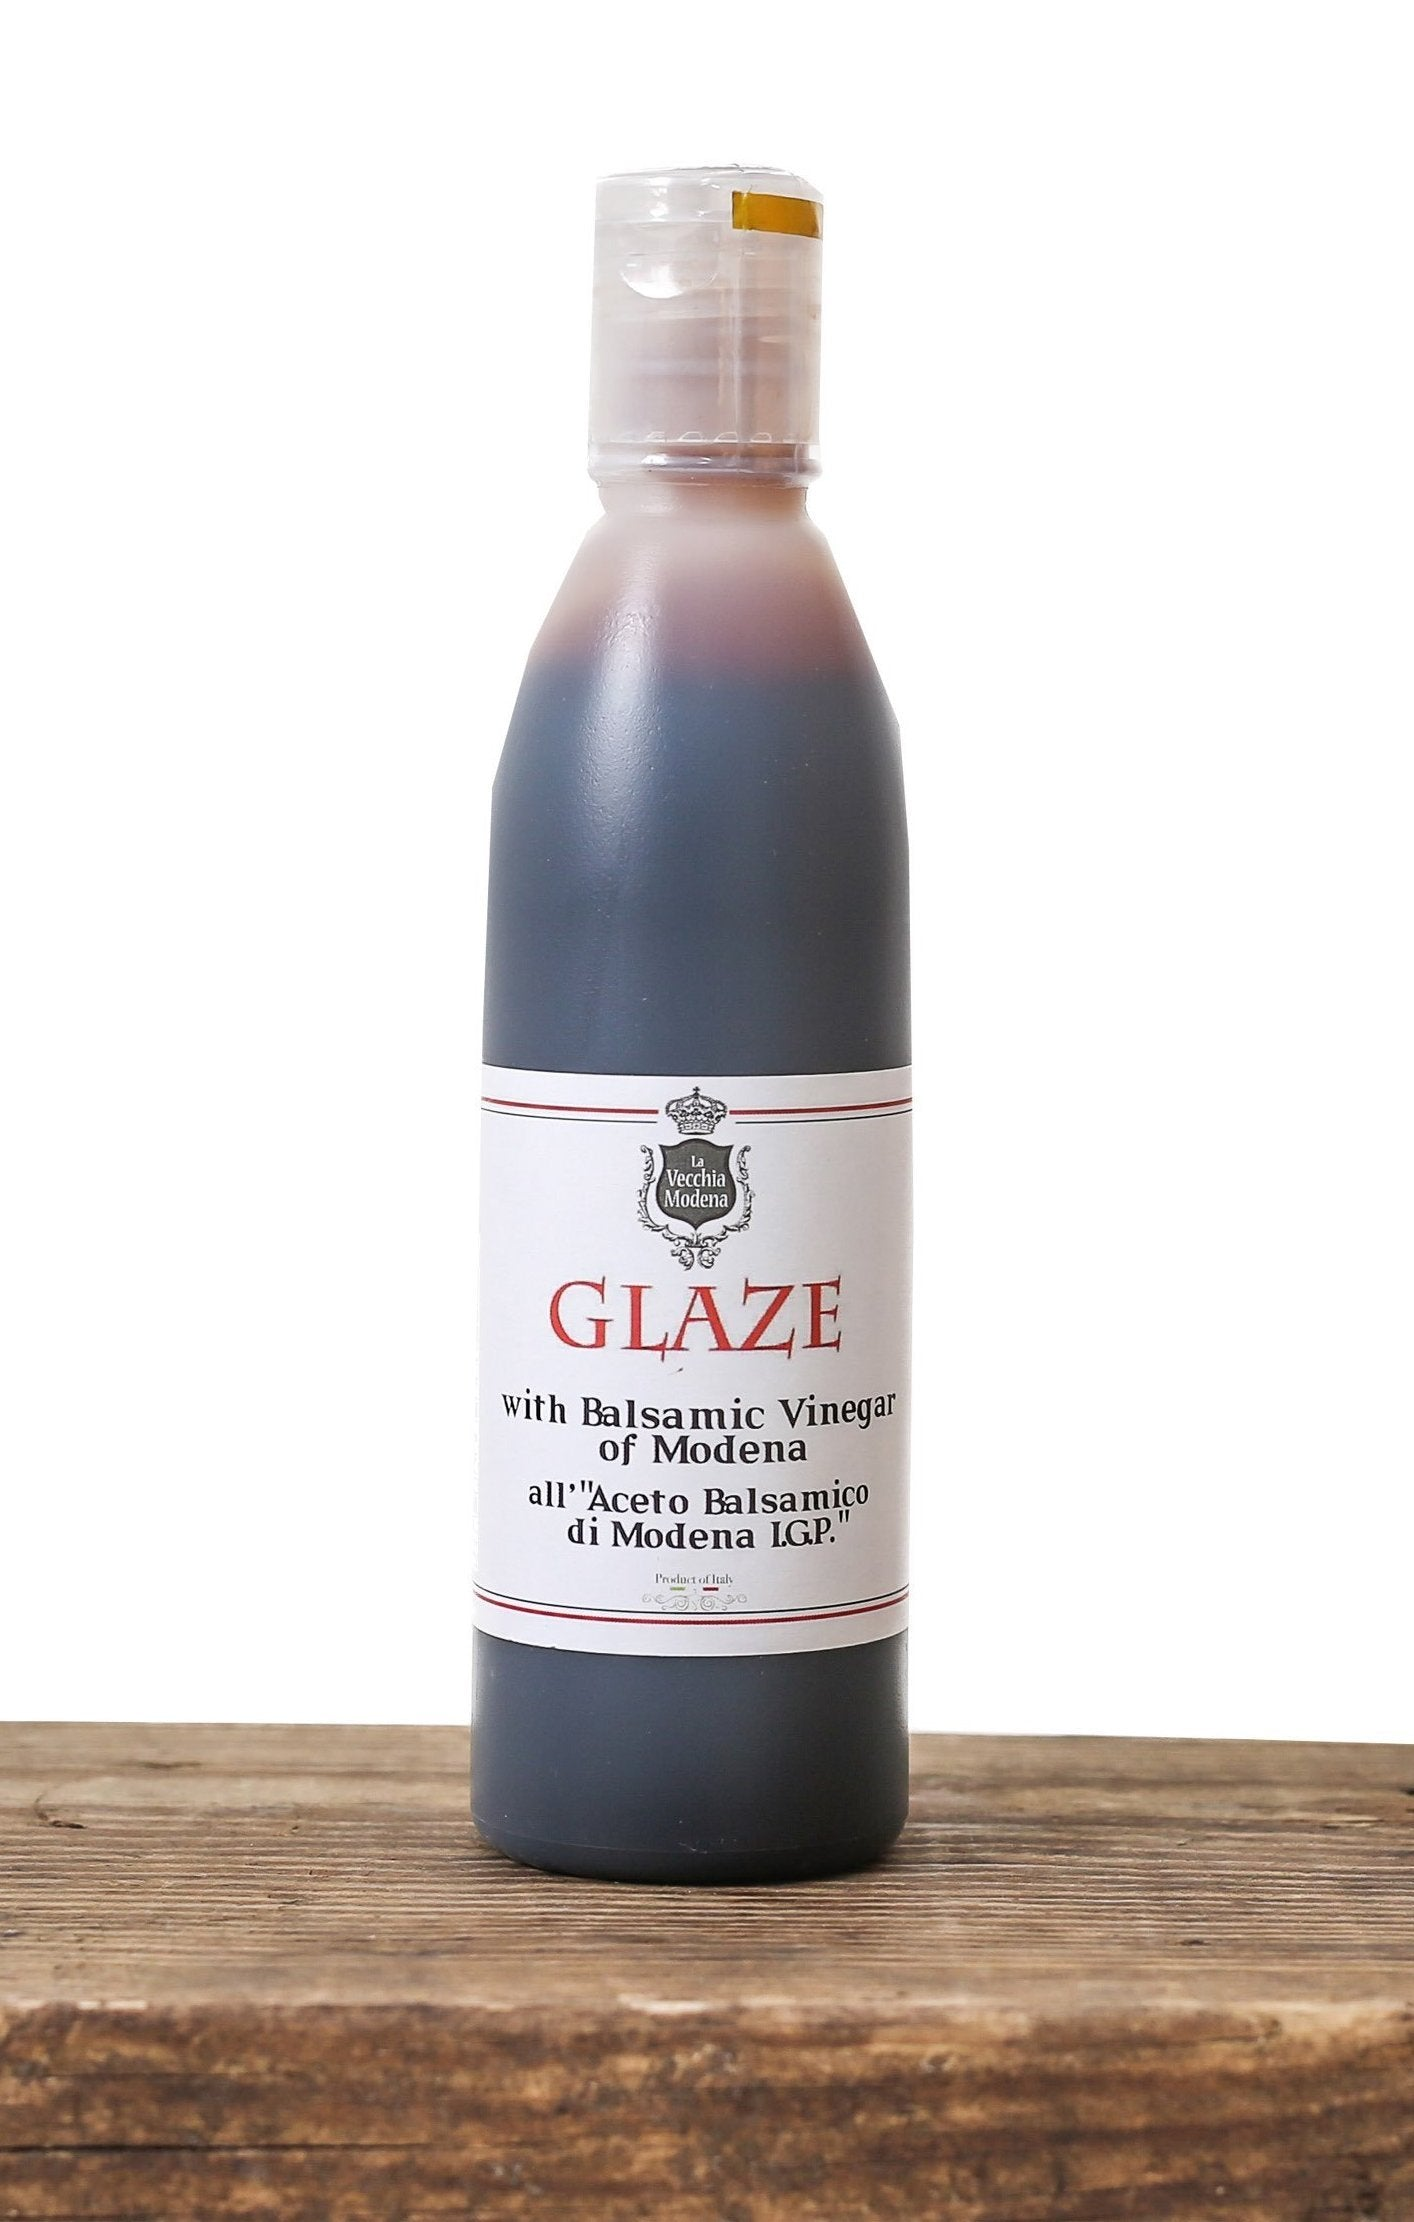 Glaze With Balsamic Vinegar Of Modena